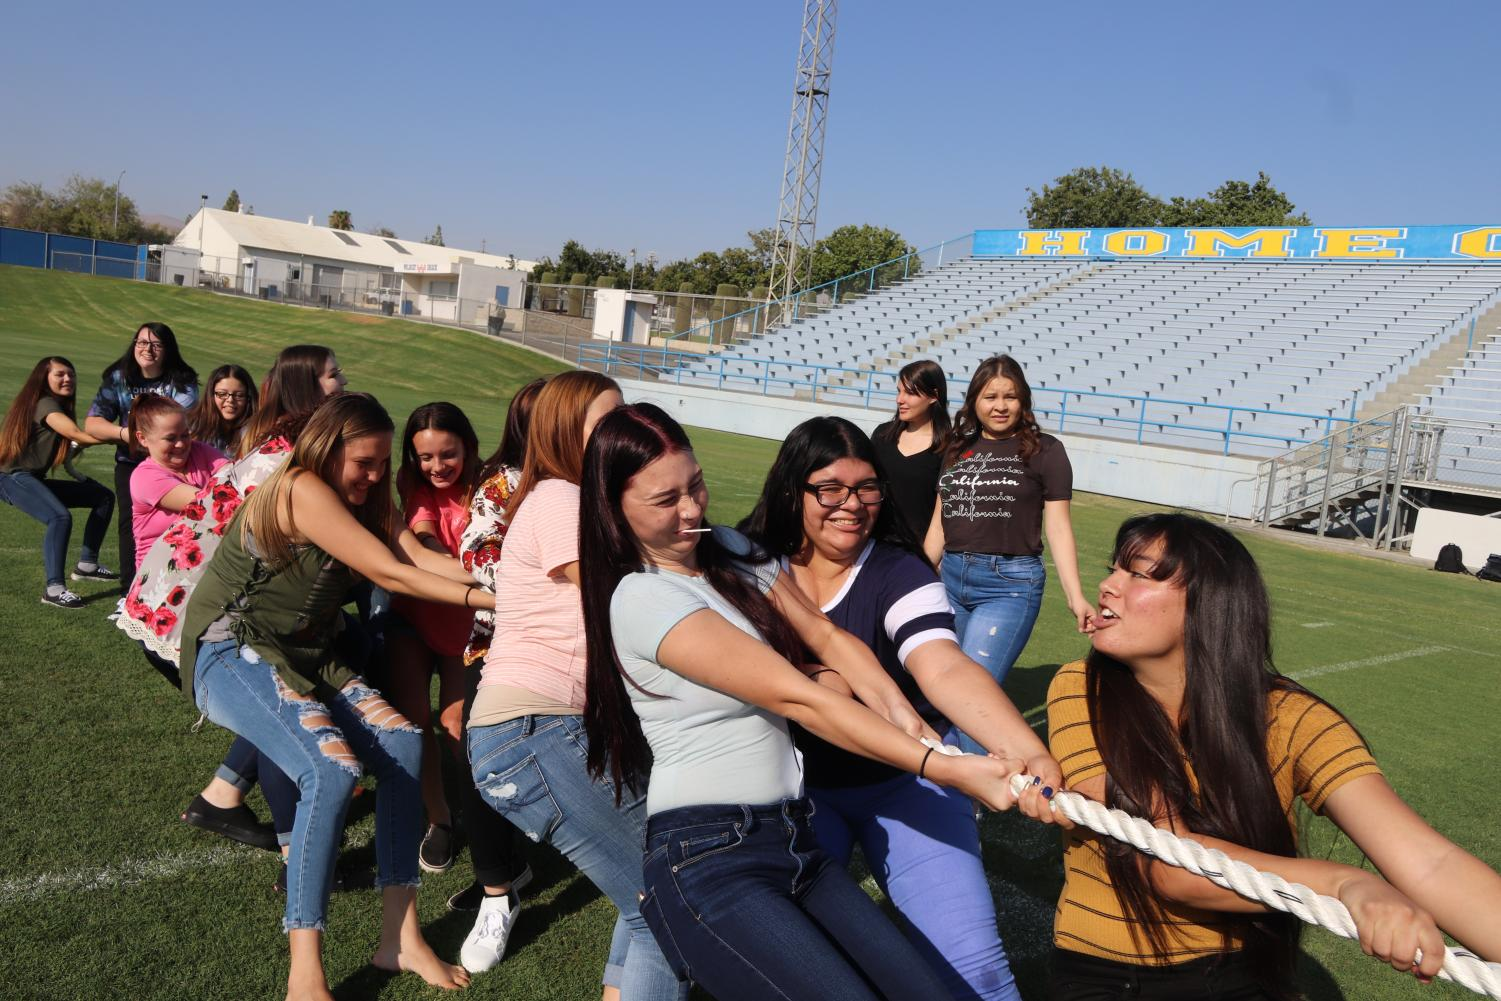 Taft High seniors participate in tug-of-war during the Day of Welcome. Cecily Bonton, Jade Gessel, and Graciela Mendoza are pictured in front.